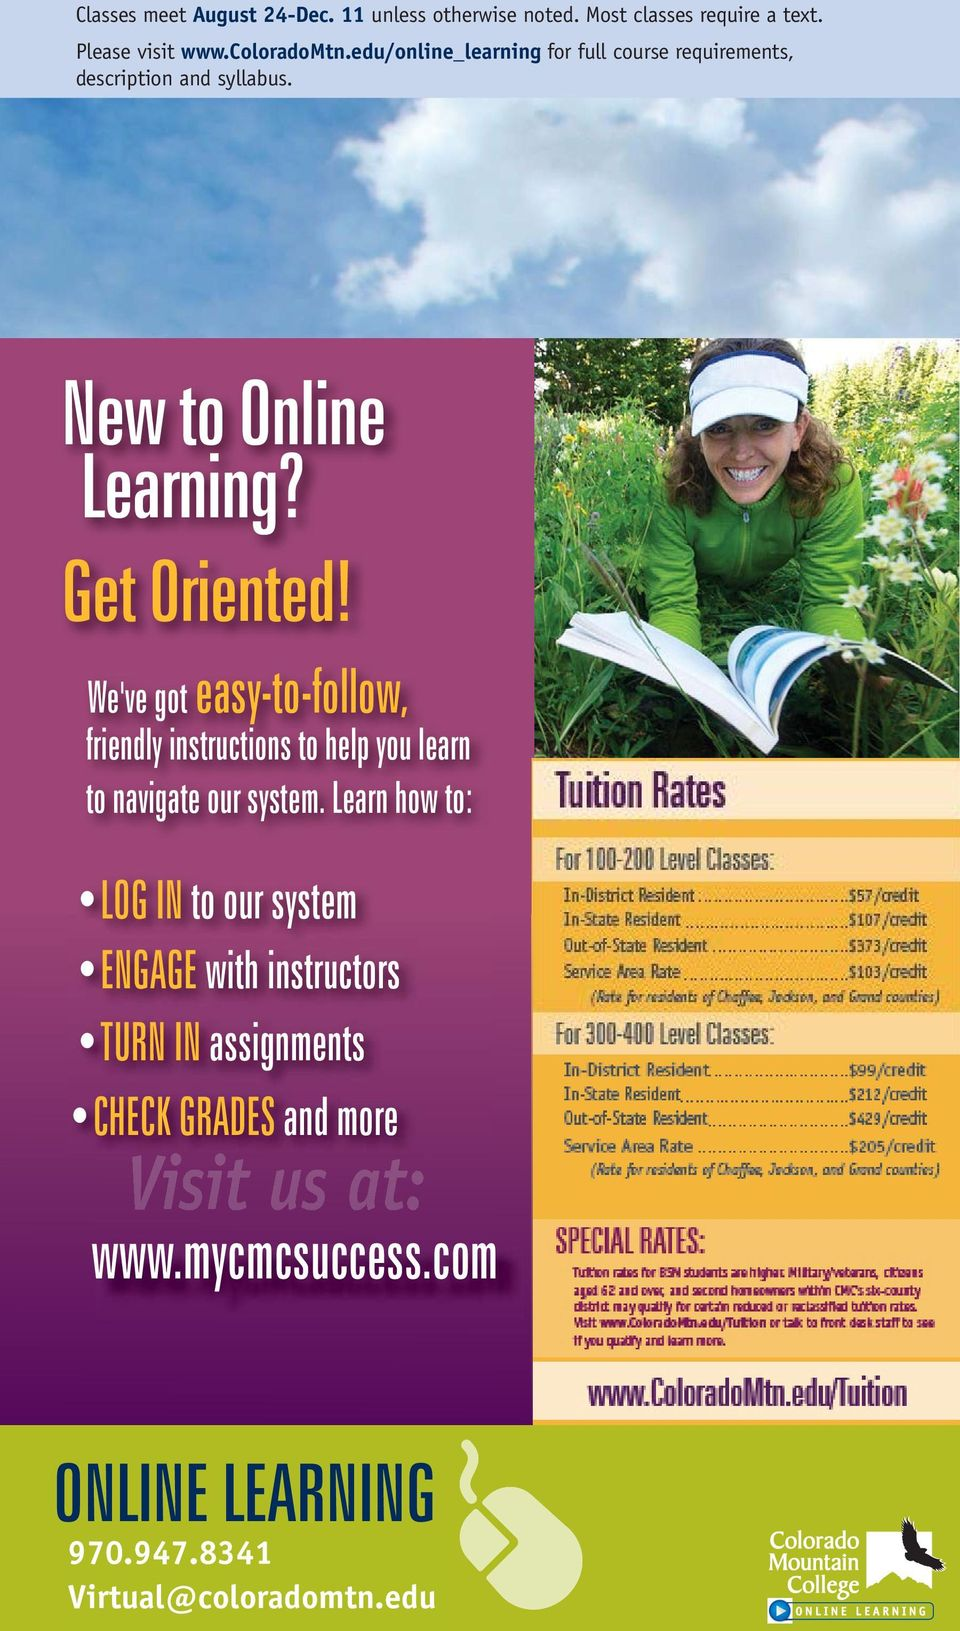 edu/online_learning for full course requirements, description and syllabus. New to Online Learning? Get Oriented!